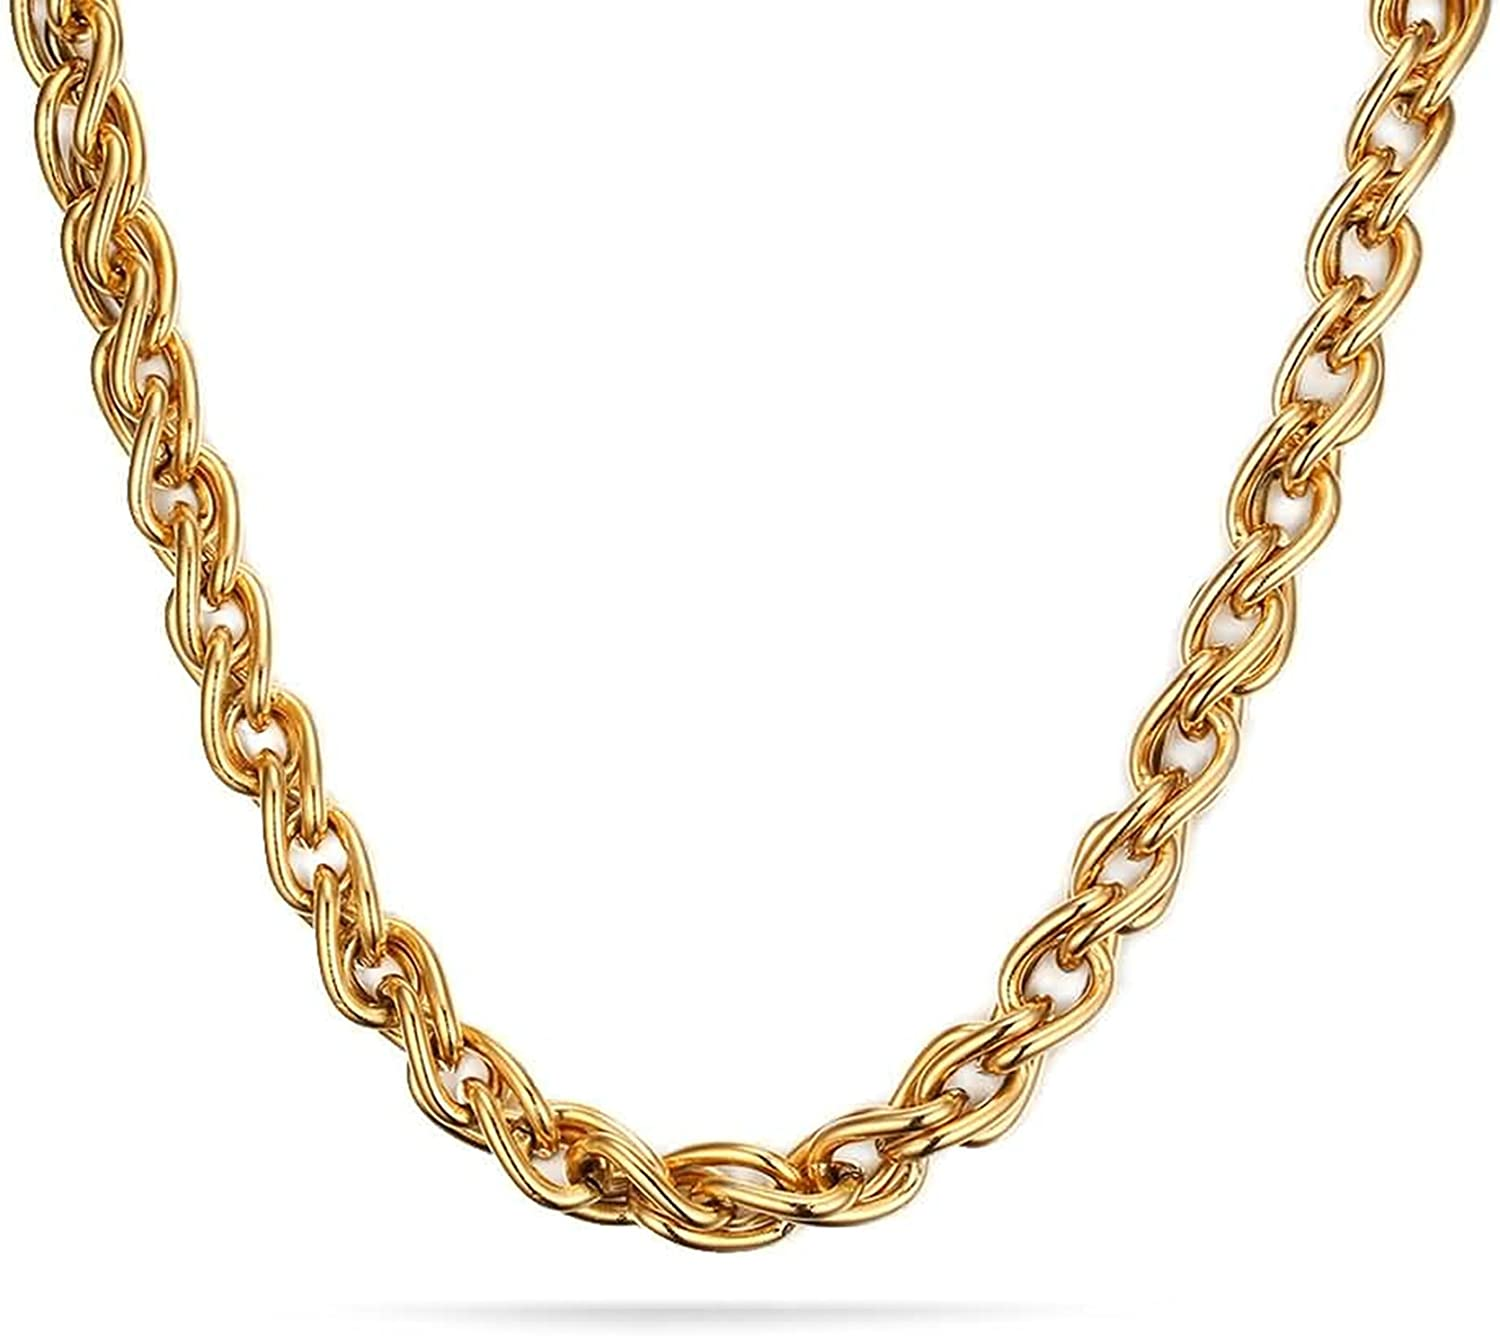 MoAndy Stainless Steel Jewelry Stainless Steel Mens Chain Necklaces Gold Double Curb Chain High Polished Hypoallergenic 61X0.7CM